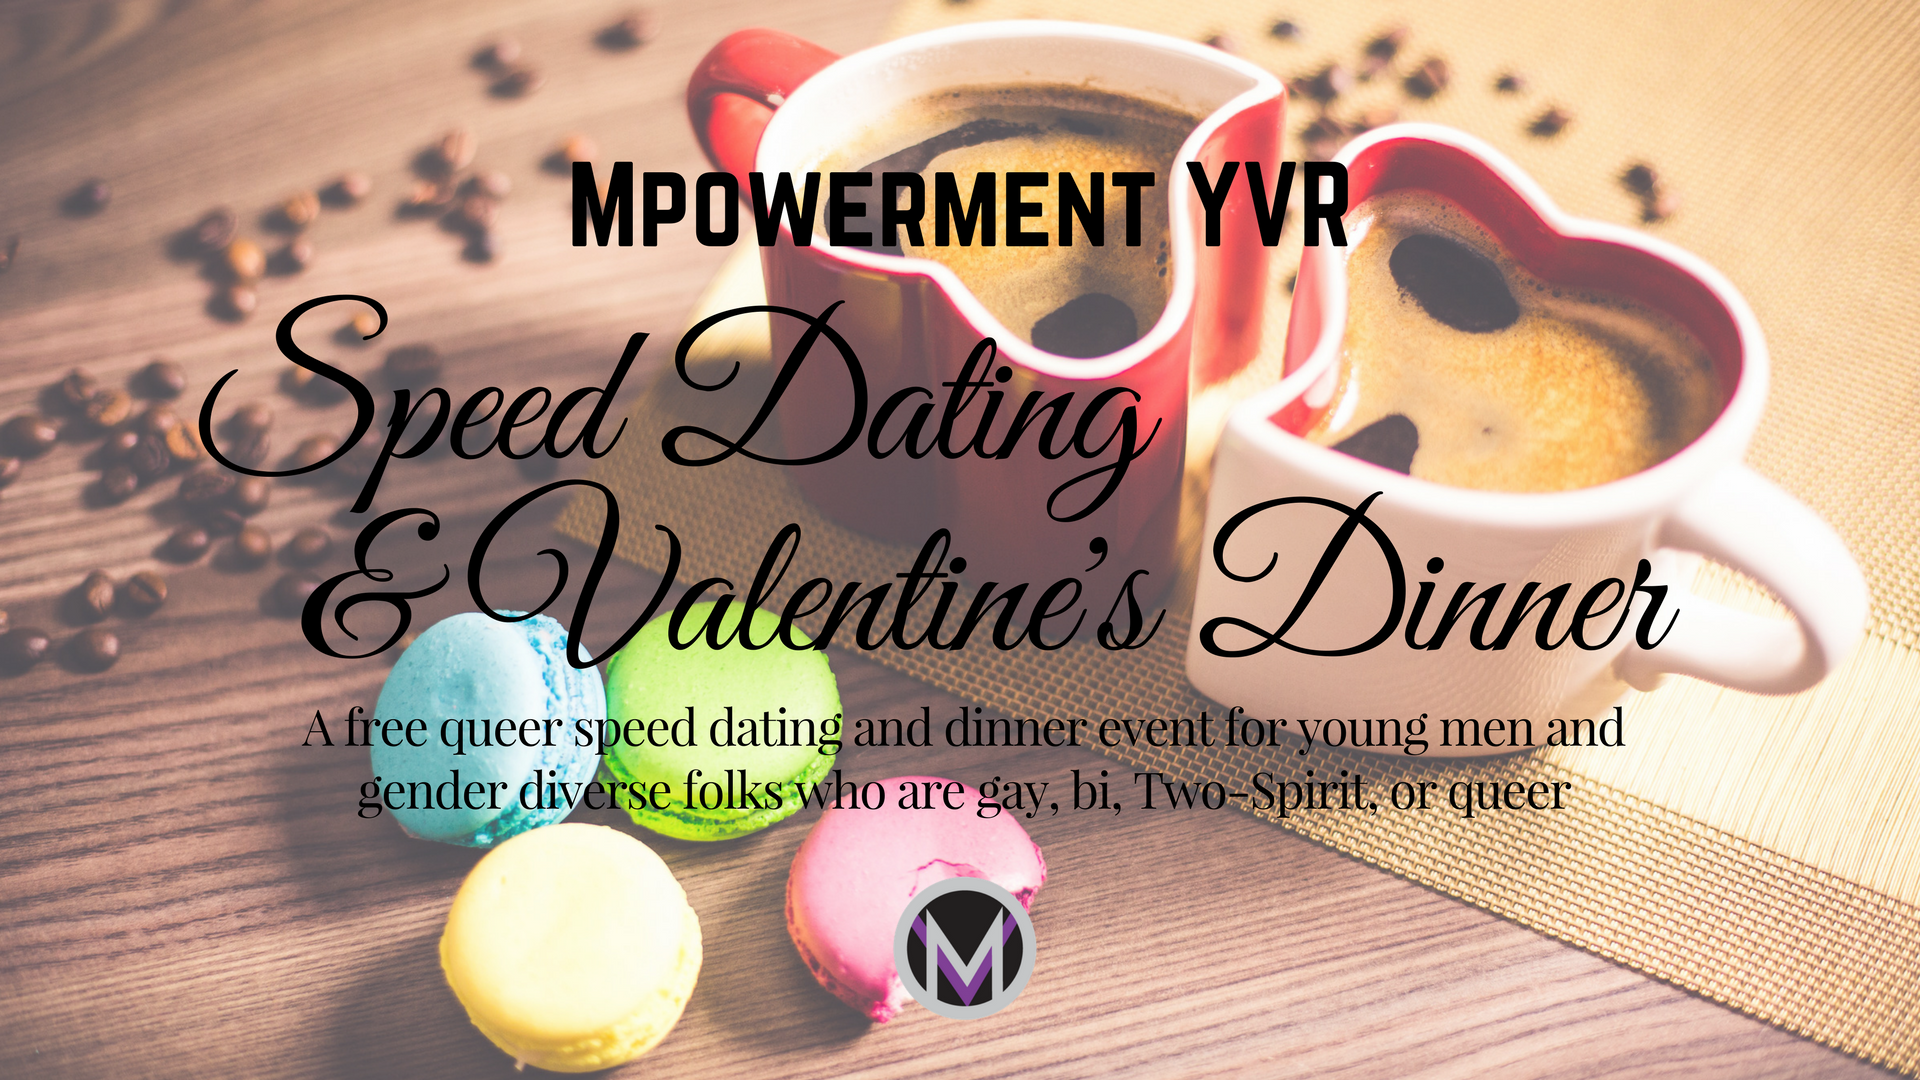 Facebook_Cover_Mpowerment_YVR_Speed_Dating_201802.png